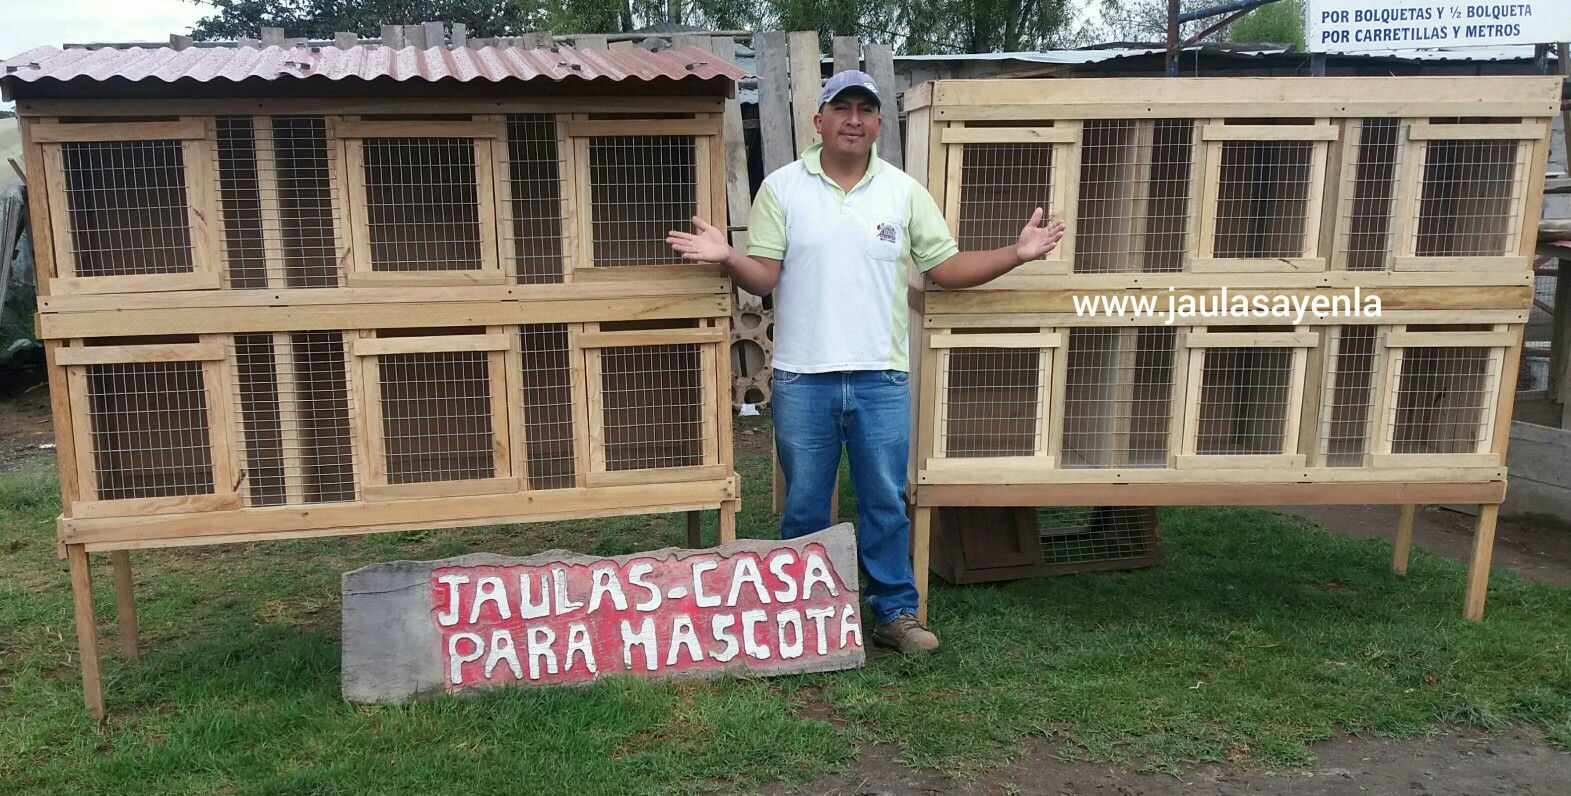 Jaulas Para Gallos. Rejones Para Gallos Finos With Jaulas ... - photo#39